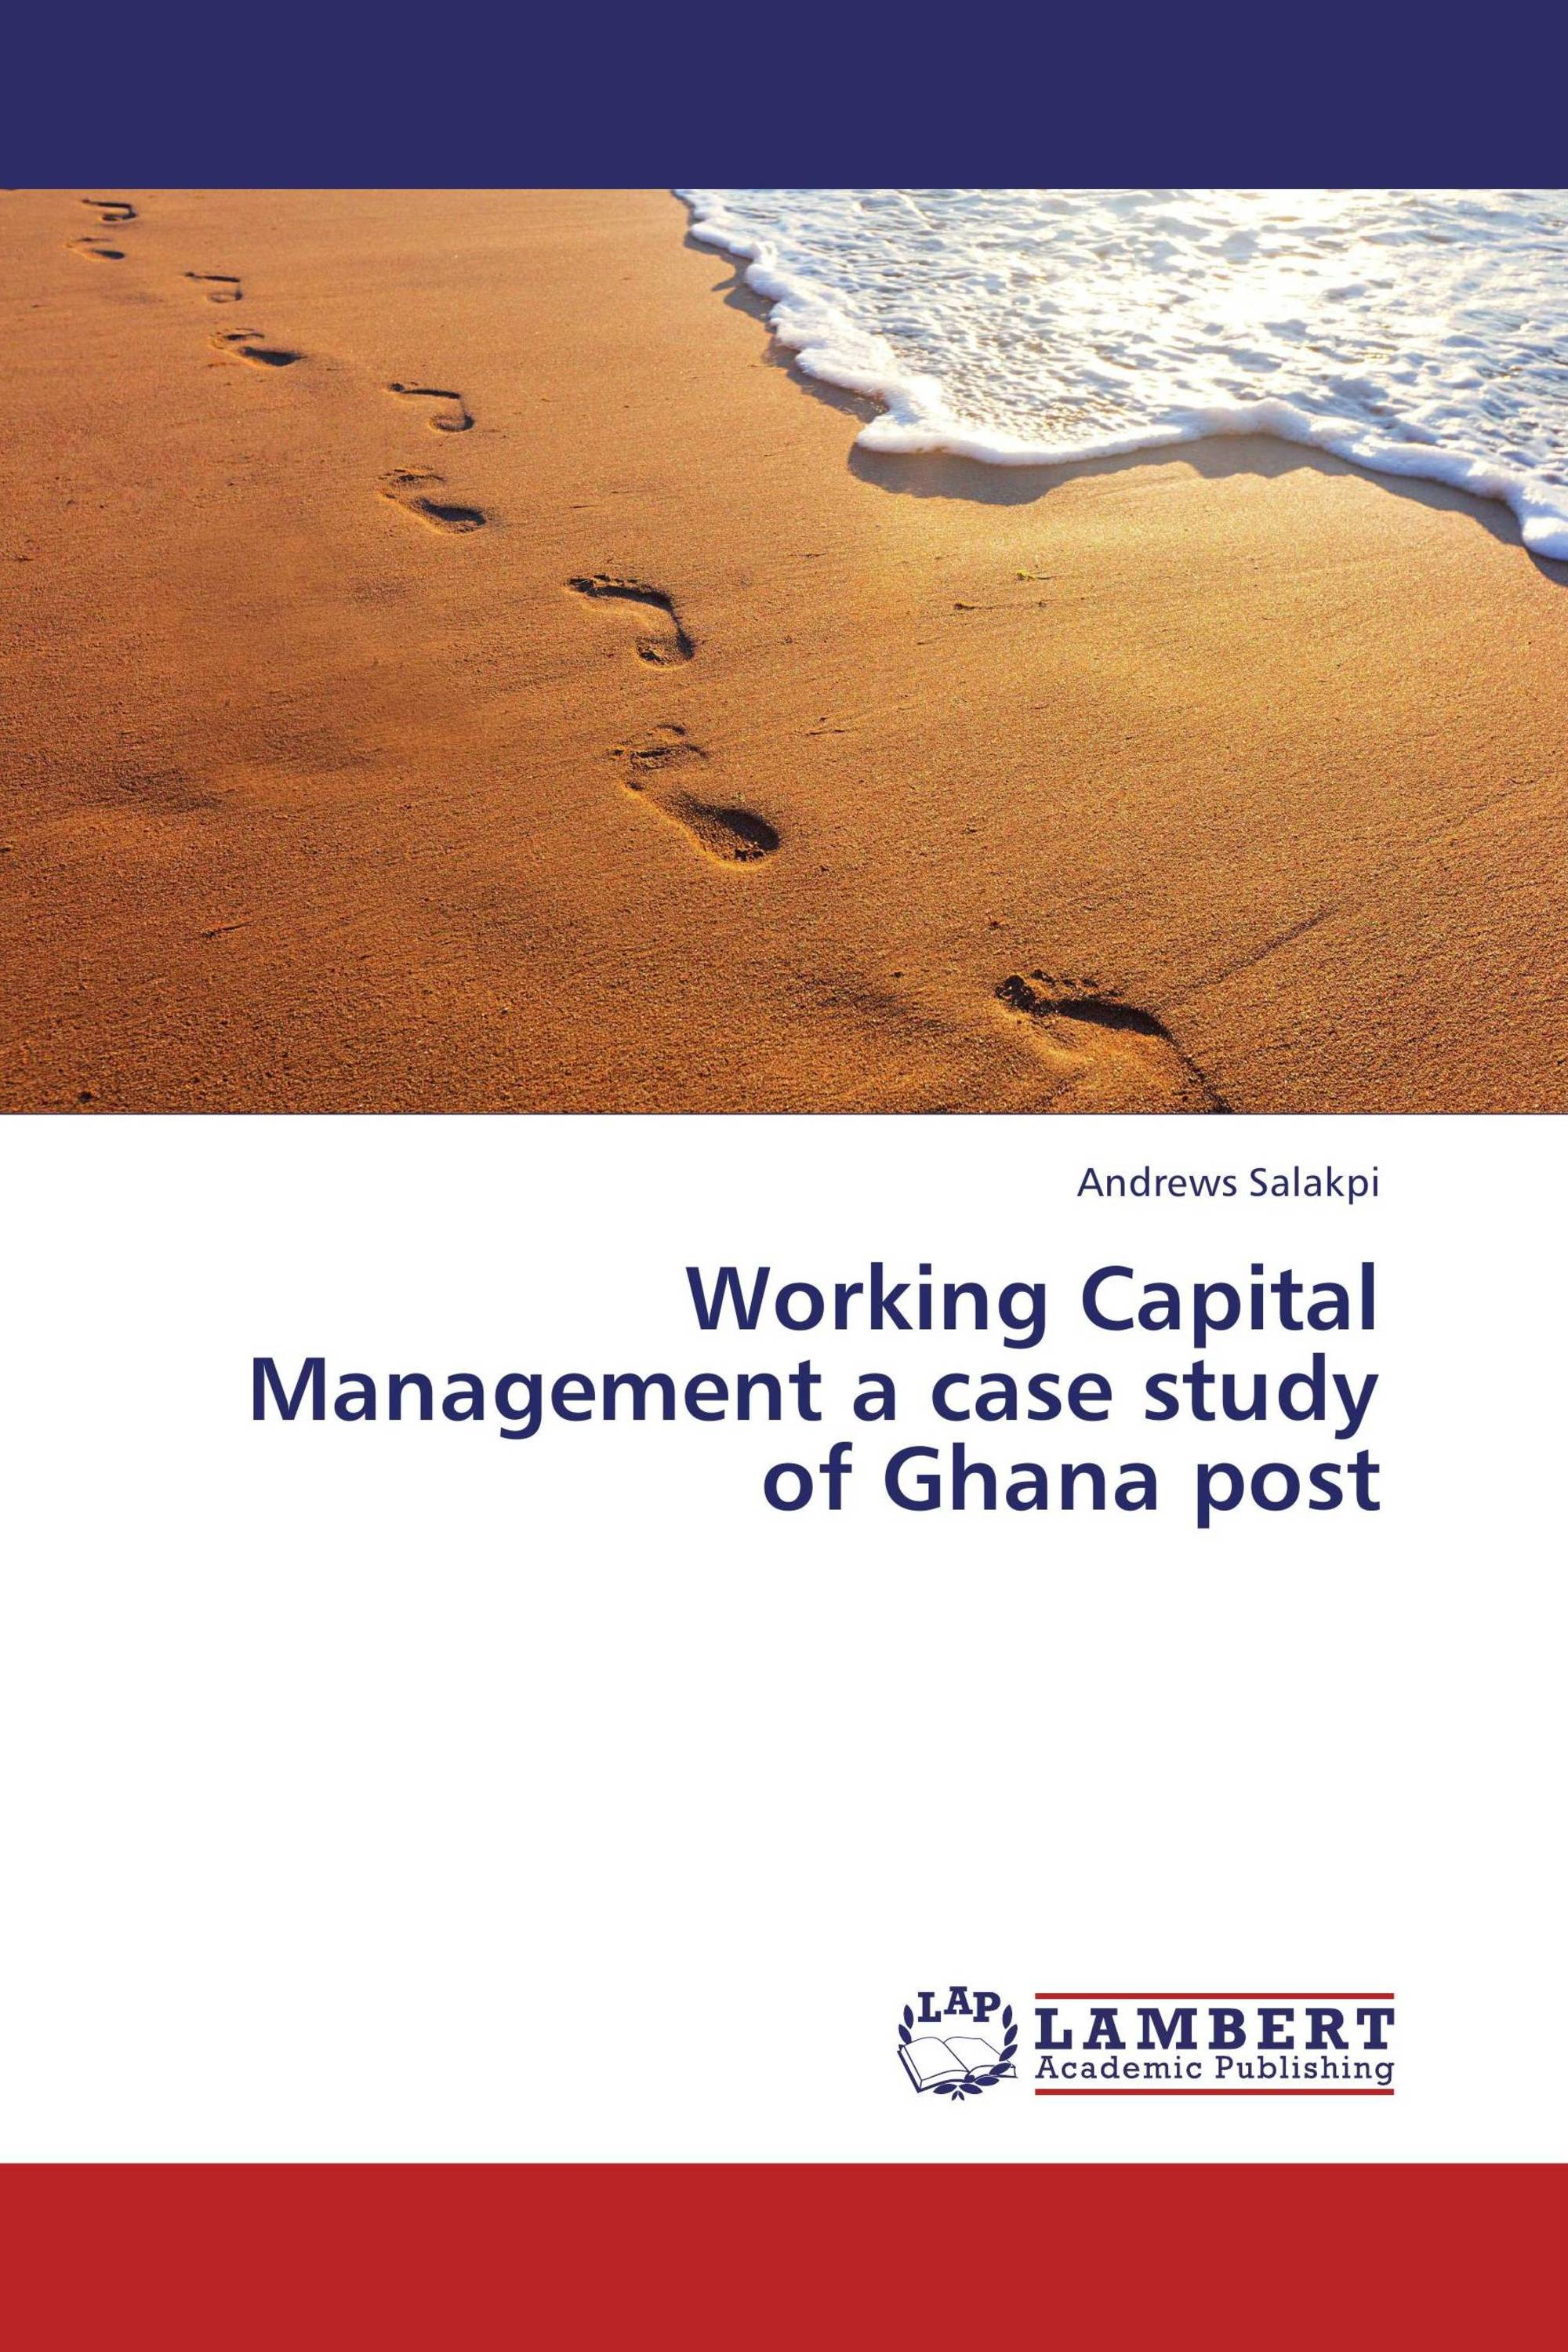 working capital management case study Best working capital management finance assignment help, case study help and homework help working capital management finance assignment help working capital is a financial topic representing the operating liquidity available in an organization, business or other entity, which includes government entity.